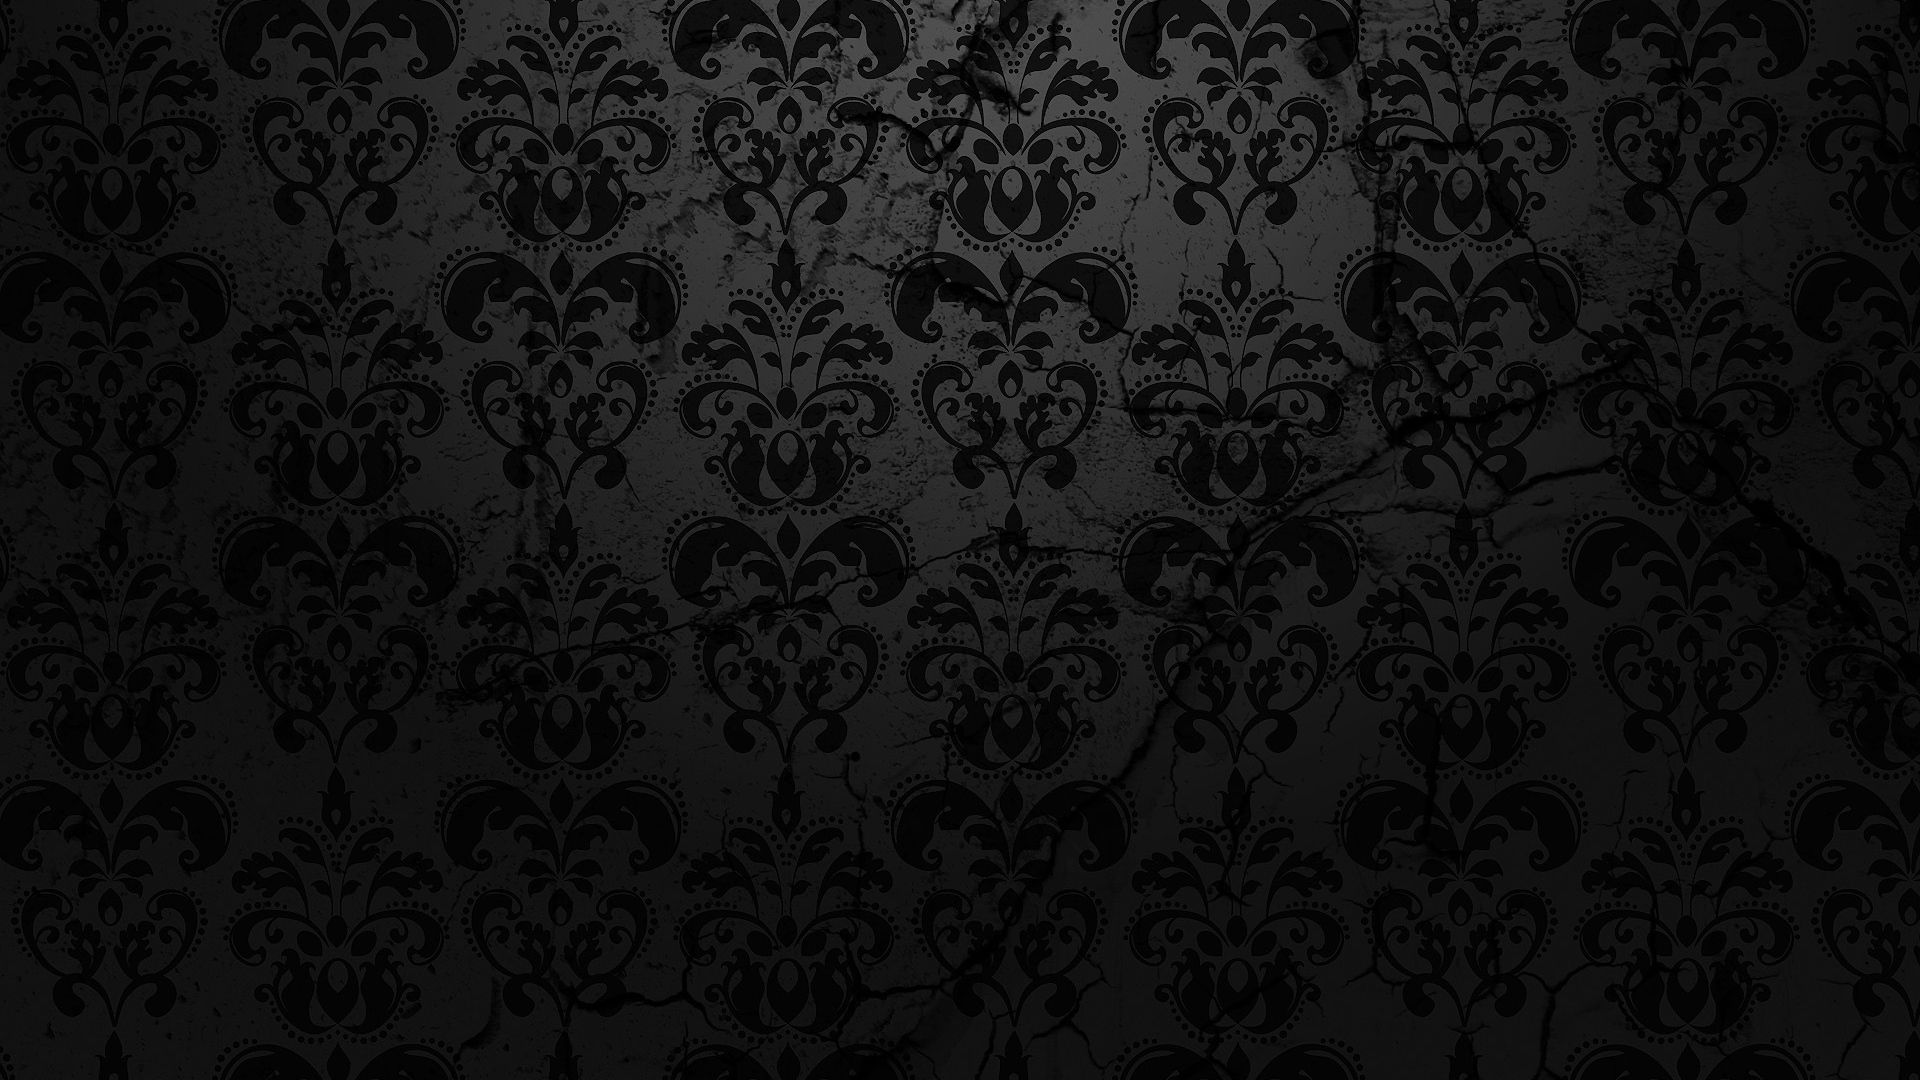 Download Wallpaper 1920x1080 Texture Pattern Black Background Full Hd 1080p Hd Background Black Background Wallpaper Plain Black Wallpaper Black Wallpaper